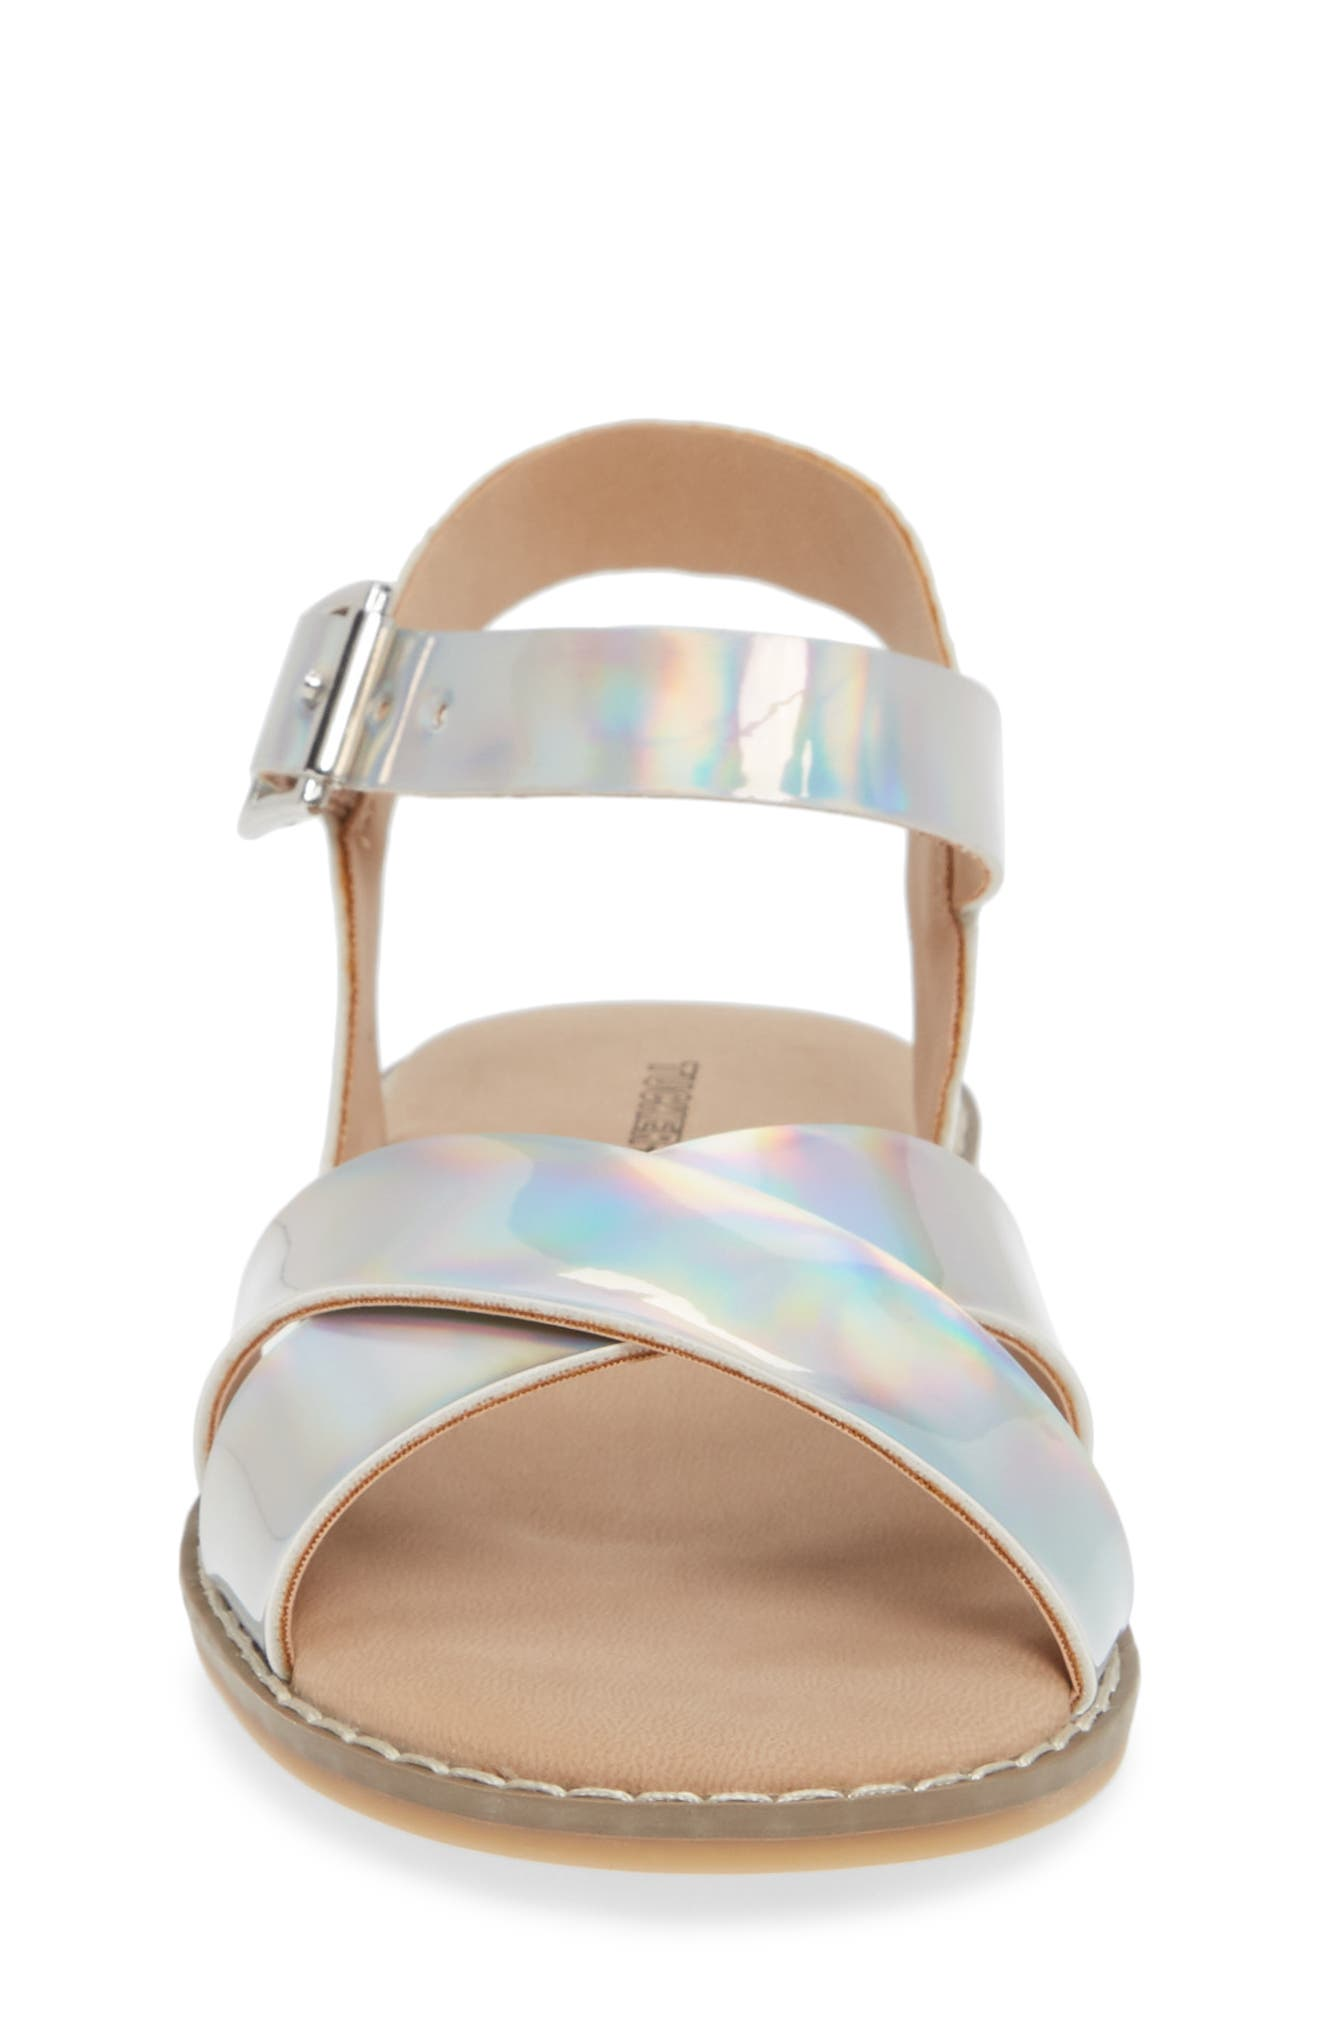 Arya Cross Strap Sandal,                             Alternate thumbnail 4, color,                             SILVER HOLOGRAM FAUX LEATHER